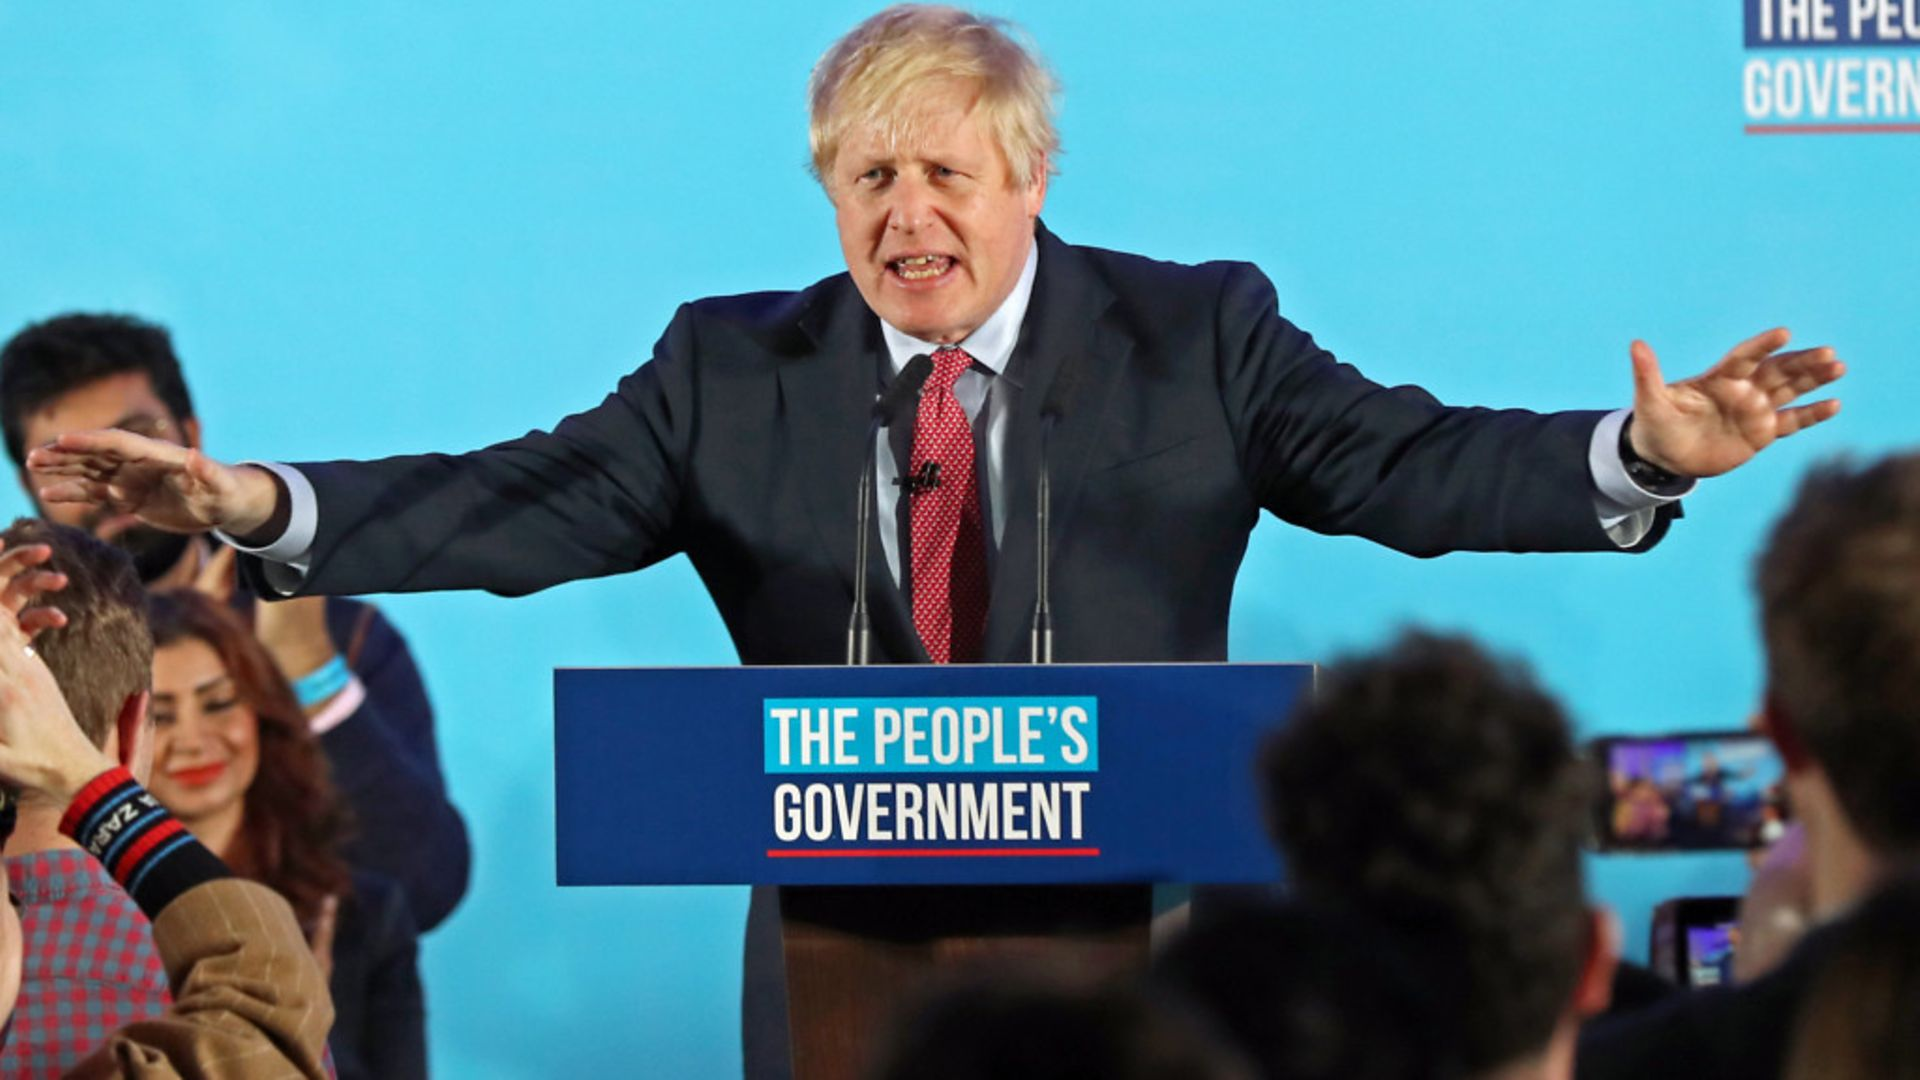 Boris Johnson at a rally with party supporters after the Conservative Party was returned to power in the General Election with an increased majority - Credit: PA